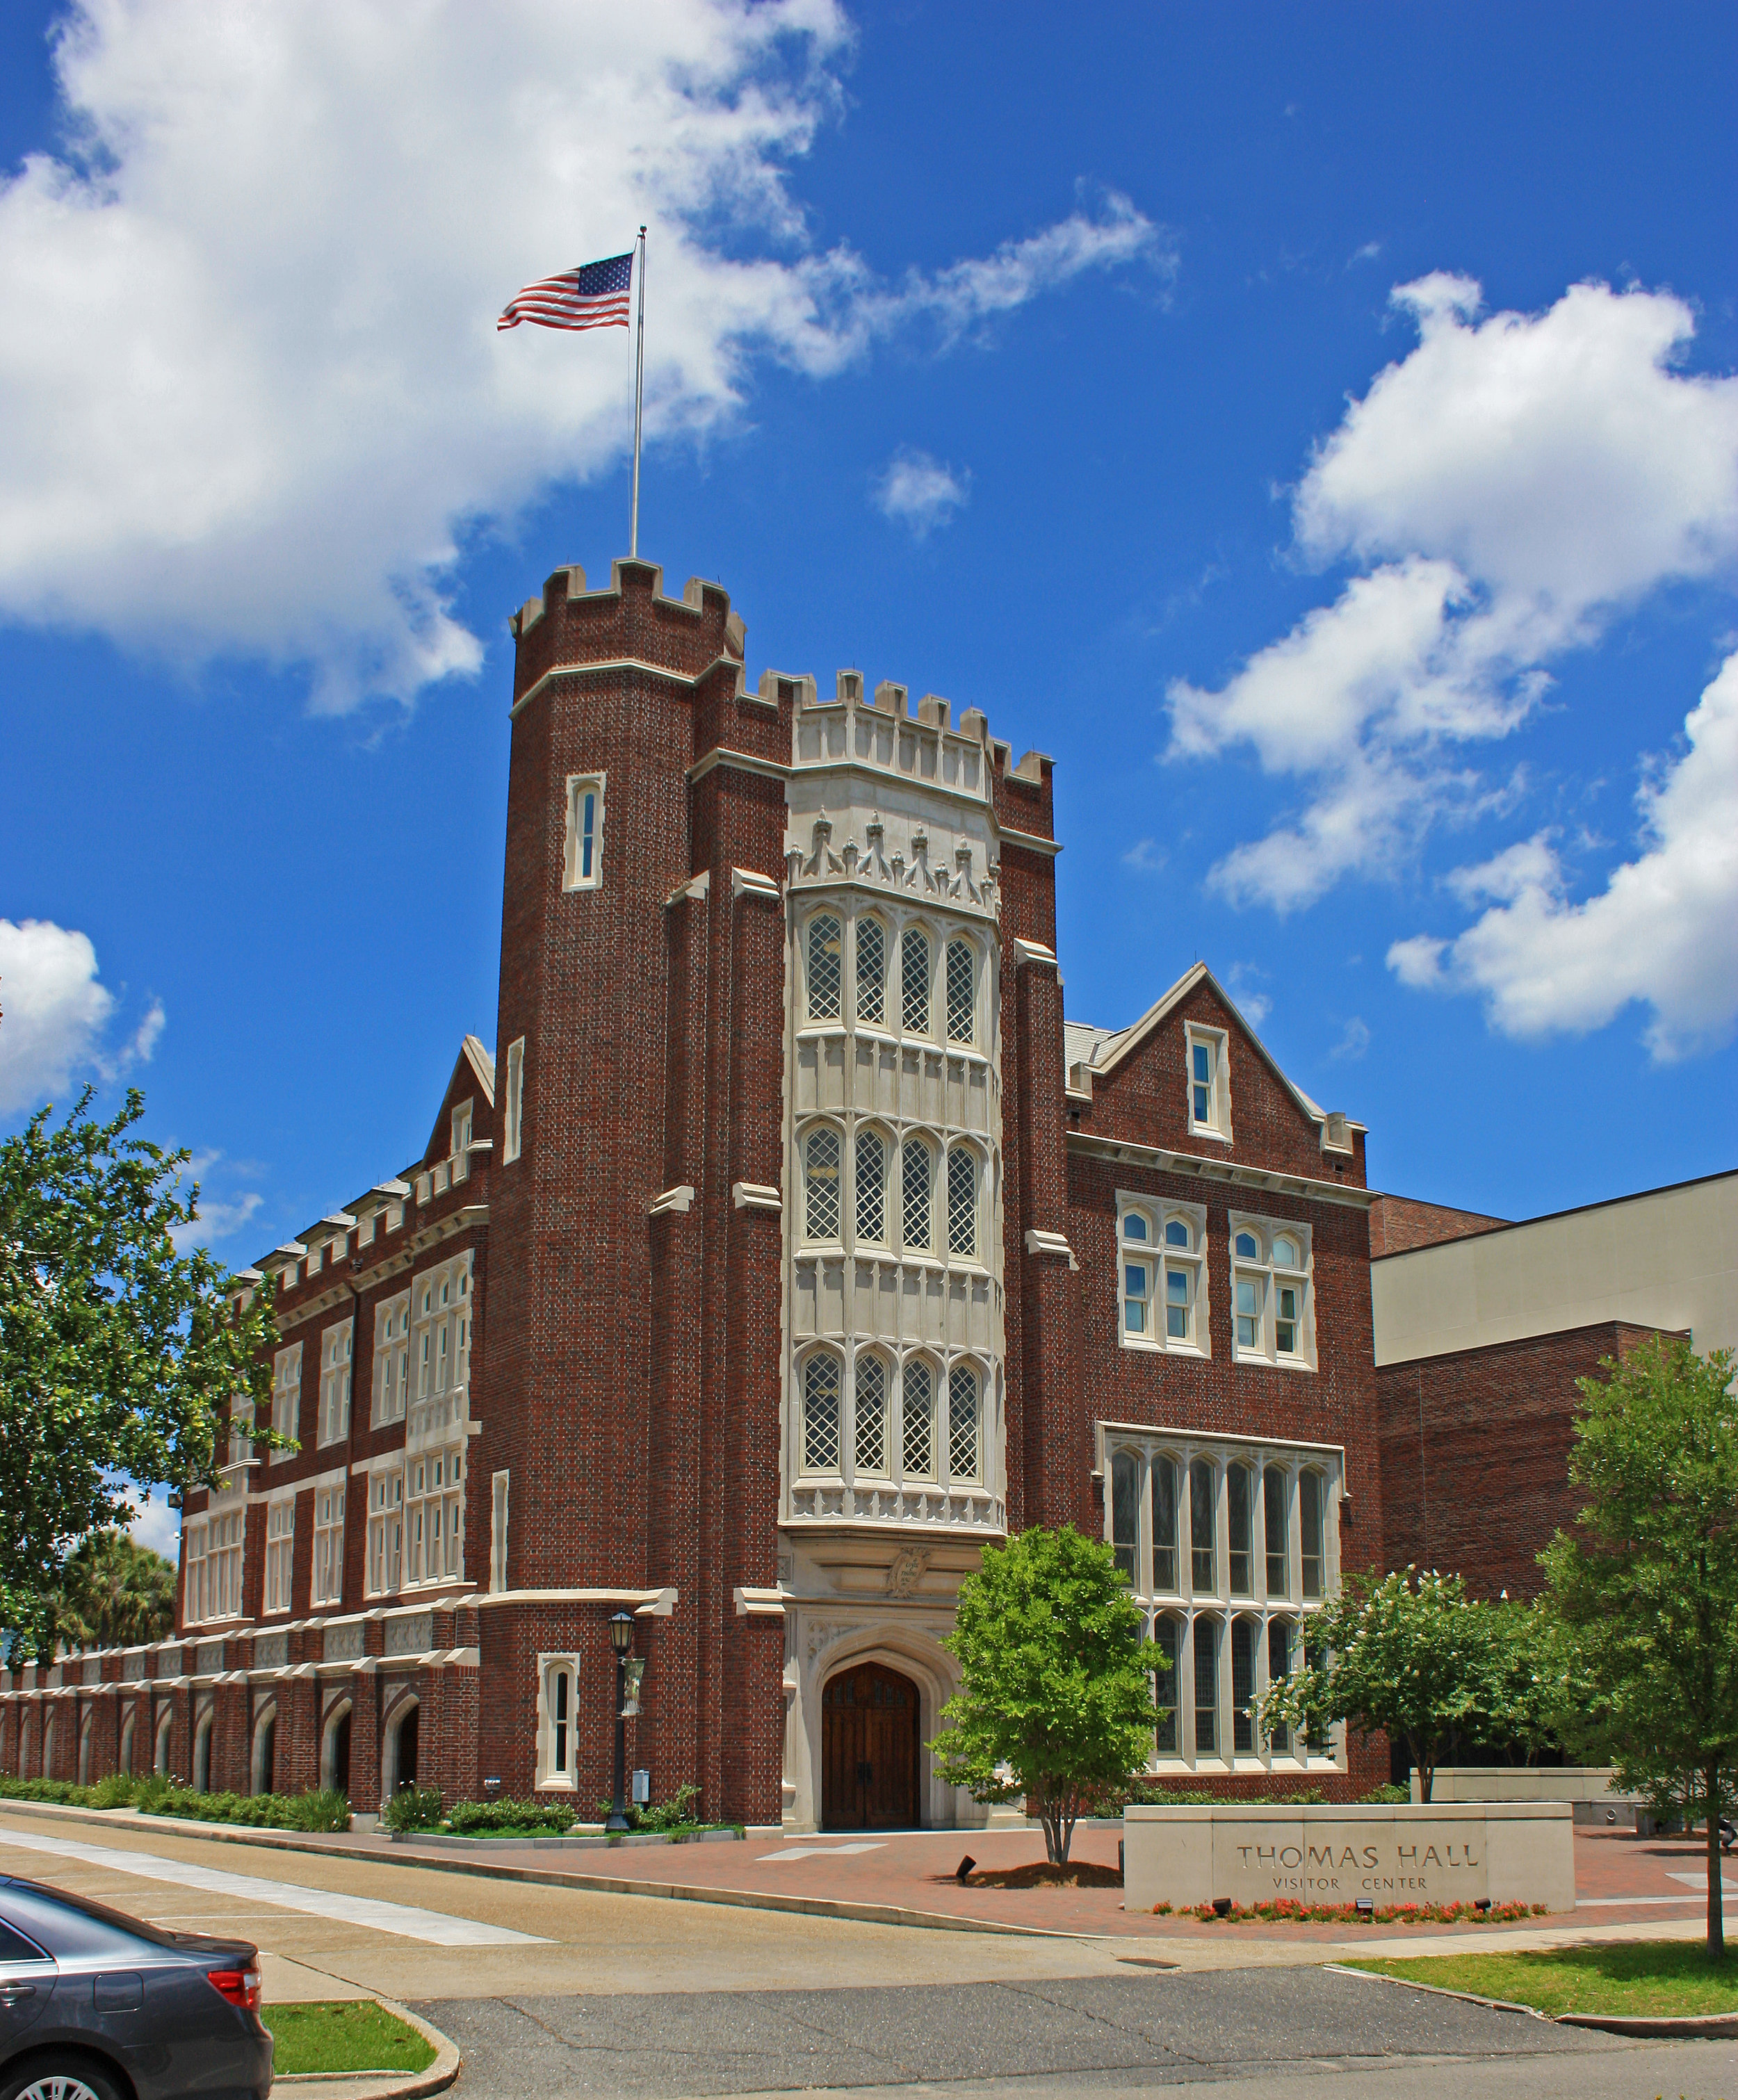 Loyola's Thomas Hall